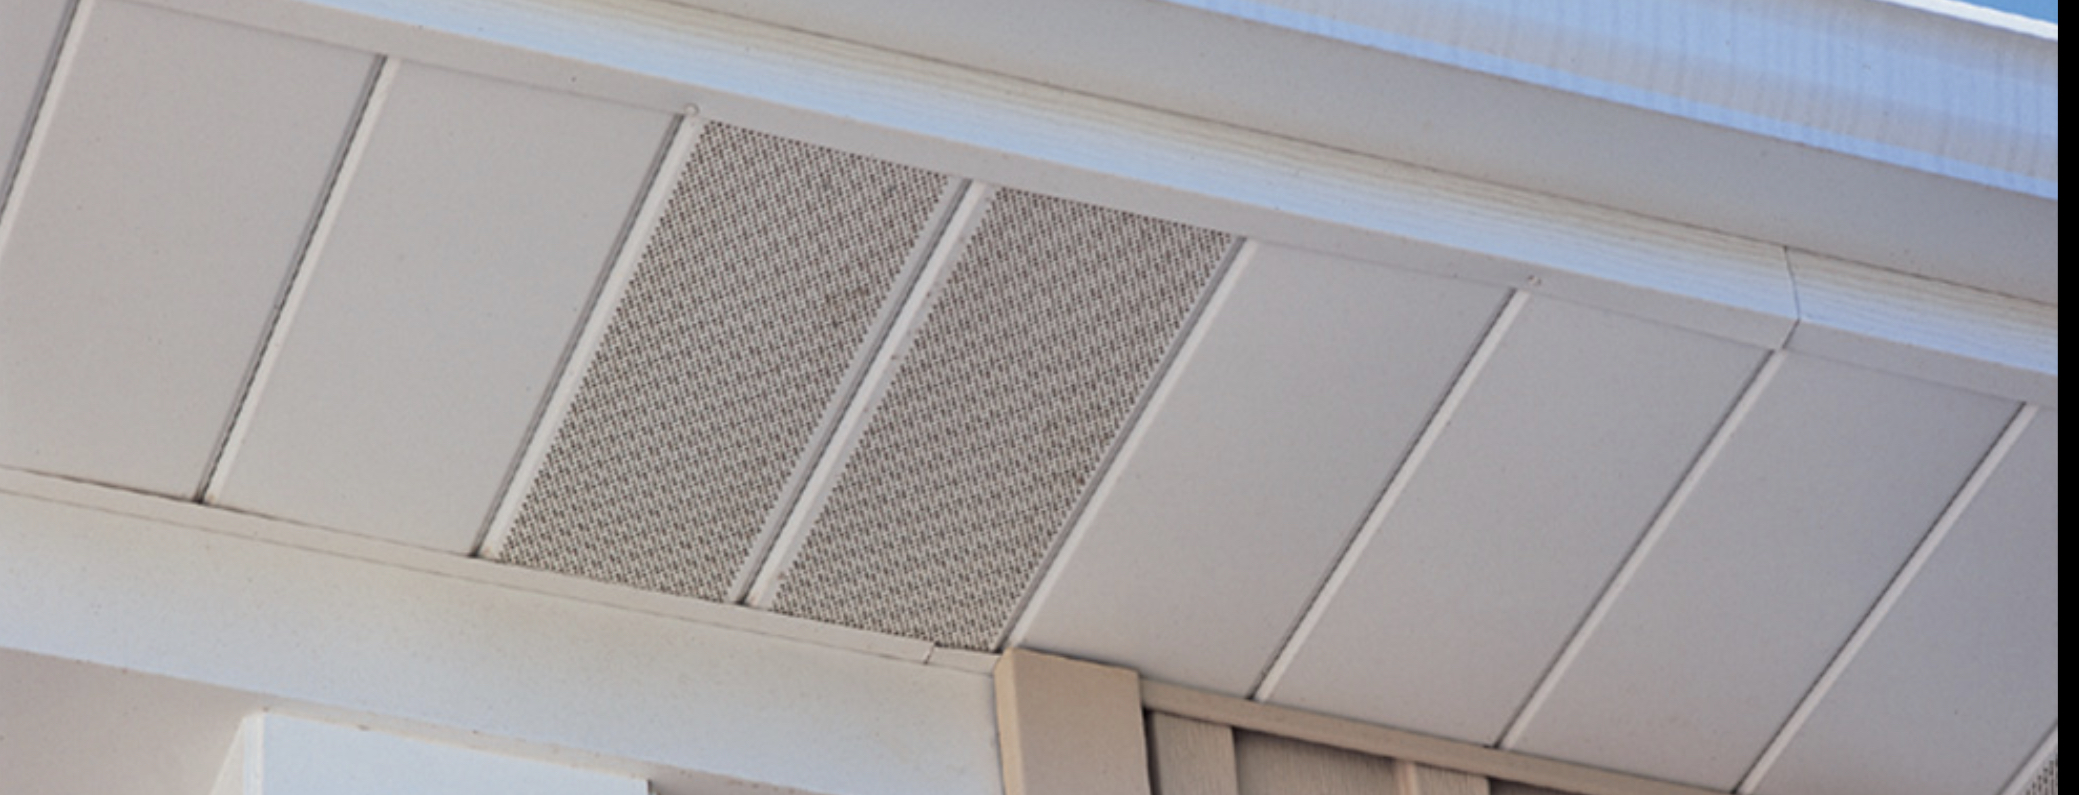 Vented and non-vented combination soffits allow your attic to breathe in combination with ridge vent, Easy to clean and maintain and will not rot.